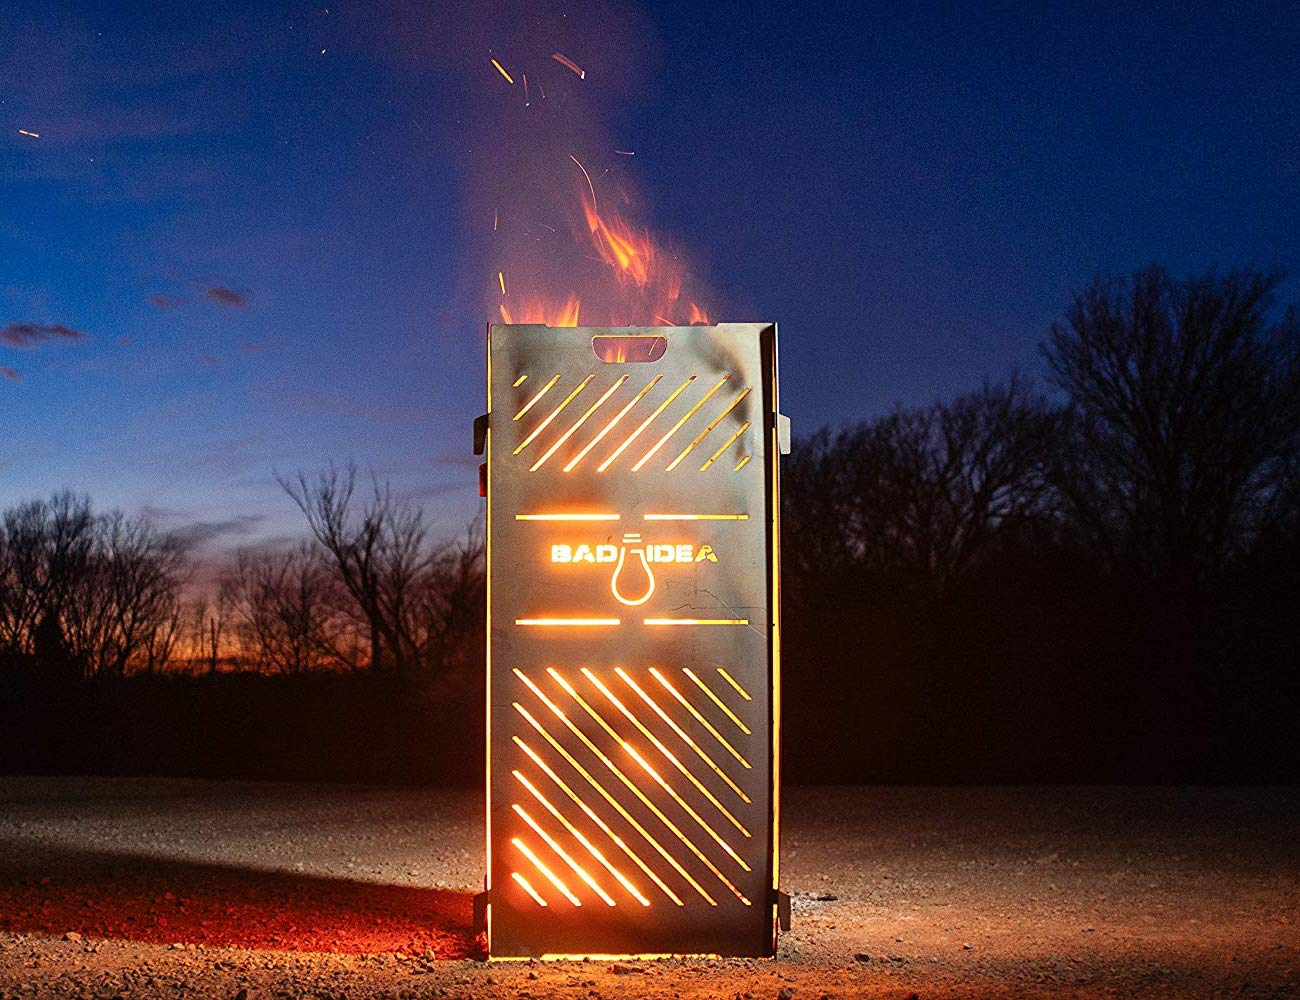 Bad Idea Metal Garbage Incinerator is here to help you burn debris from your yard